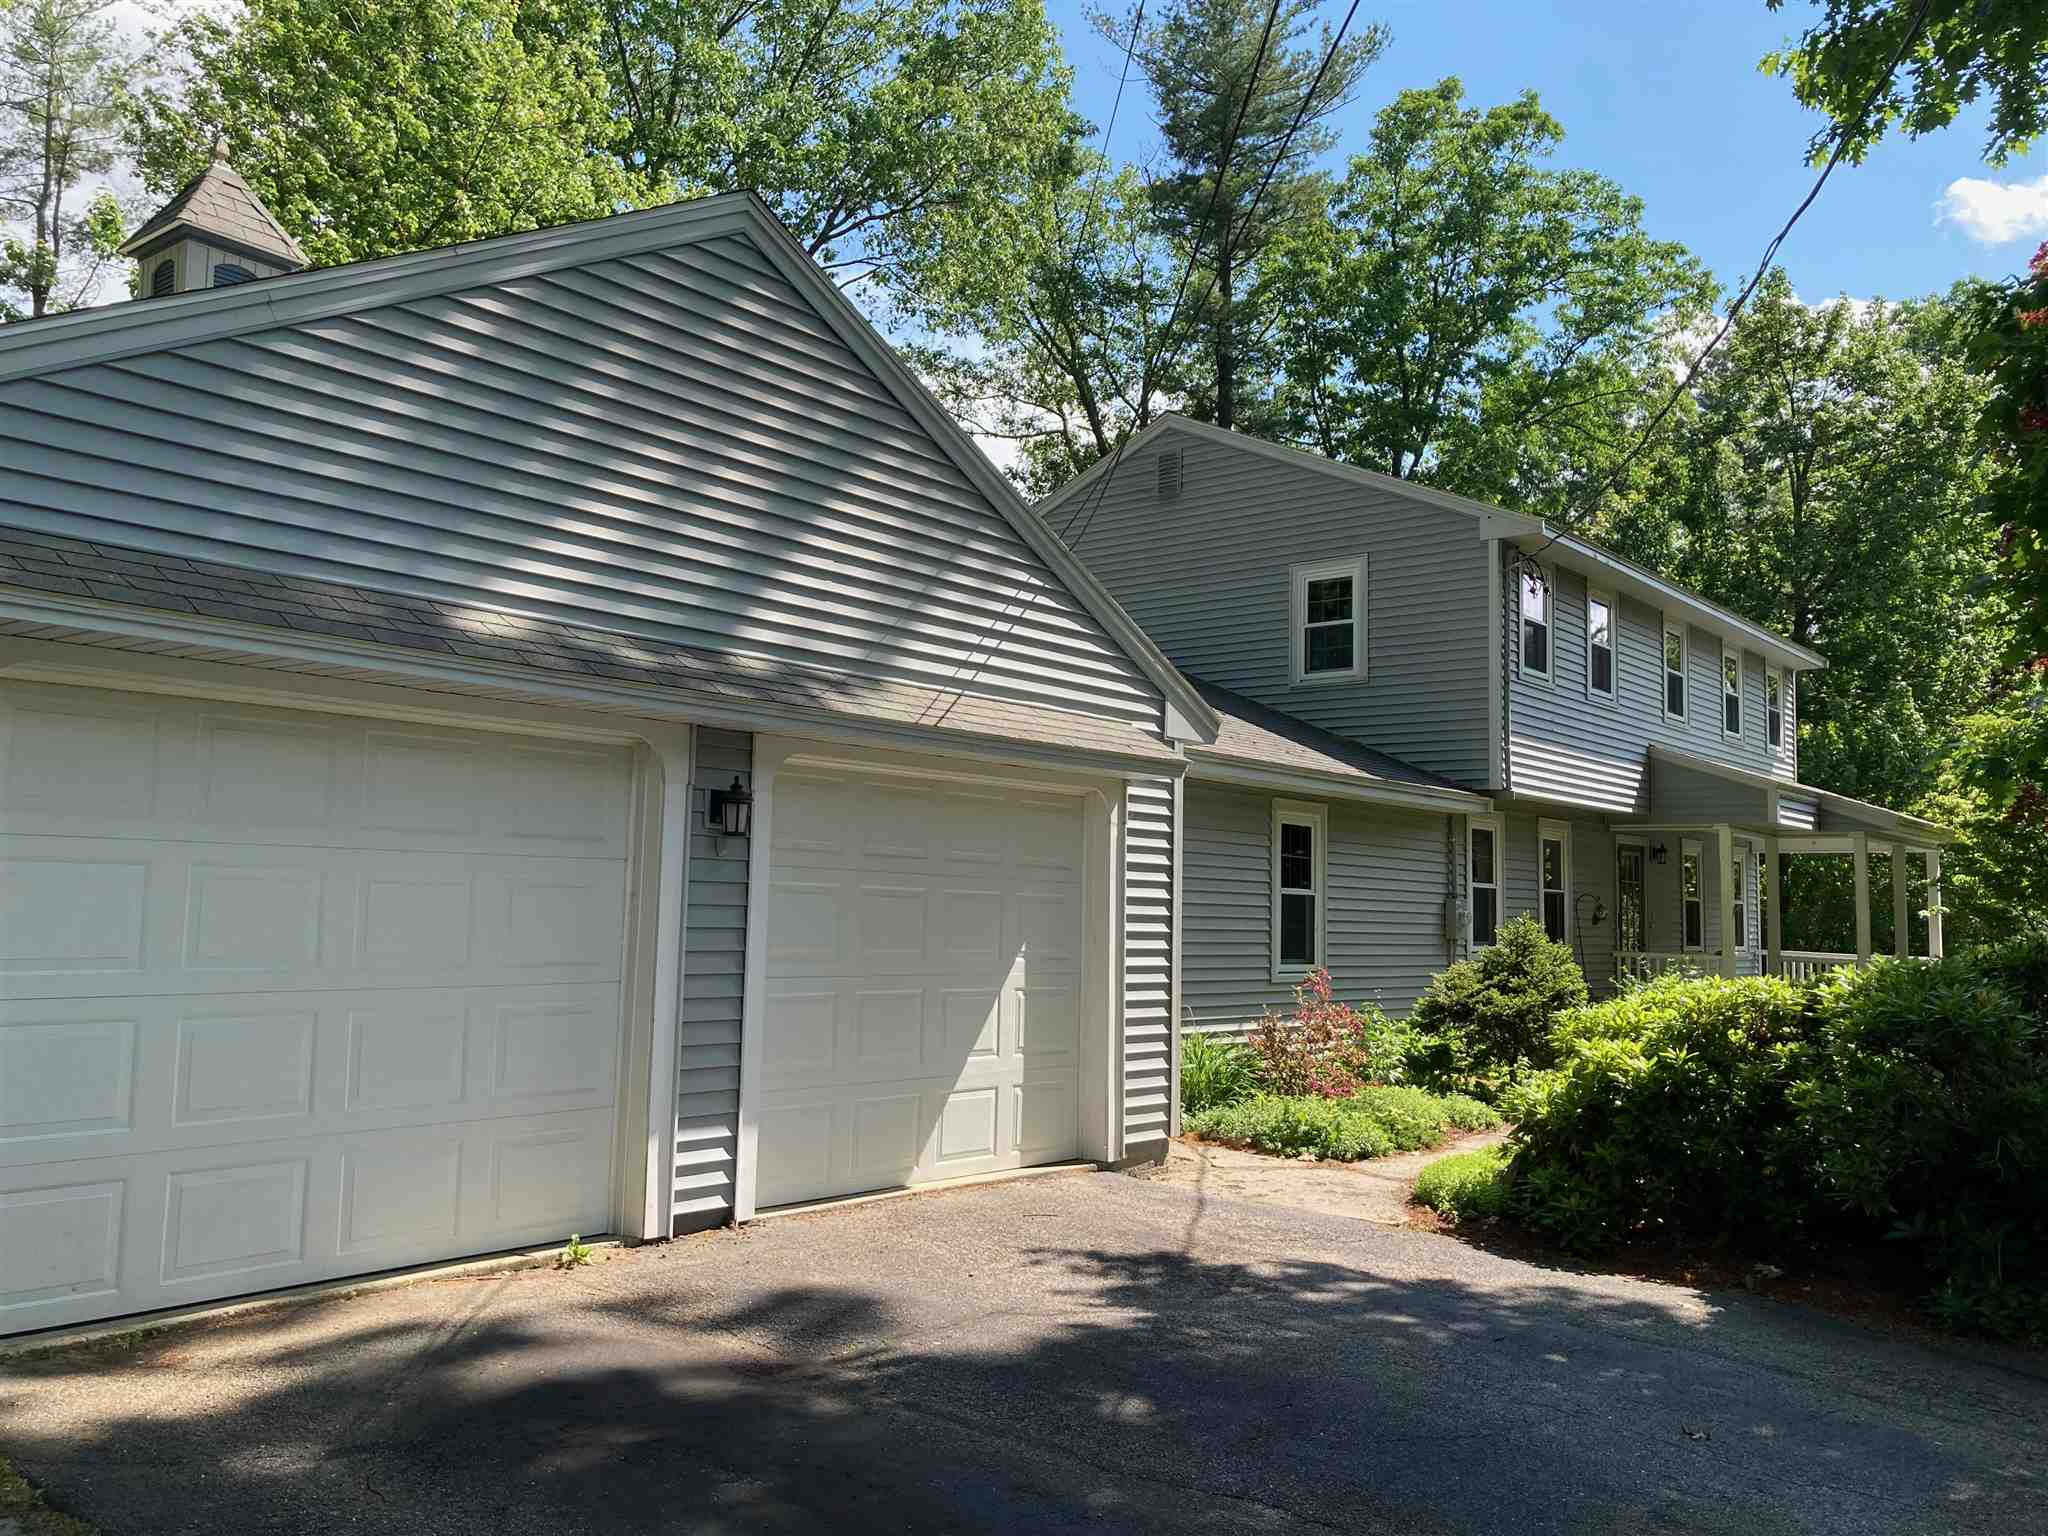 MLS 4808756: 4 Olde Coach Road, Derry NH